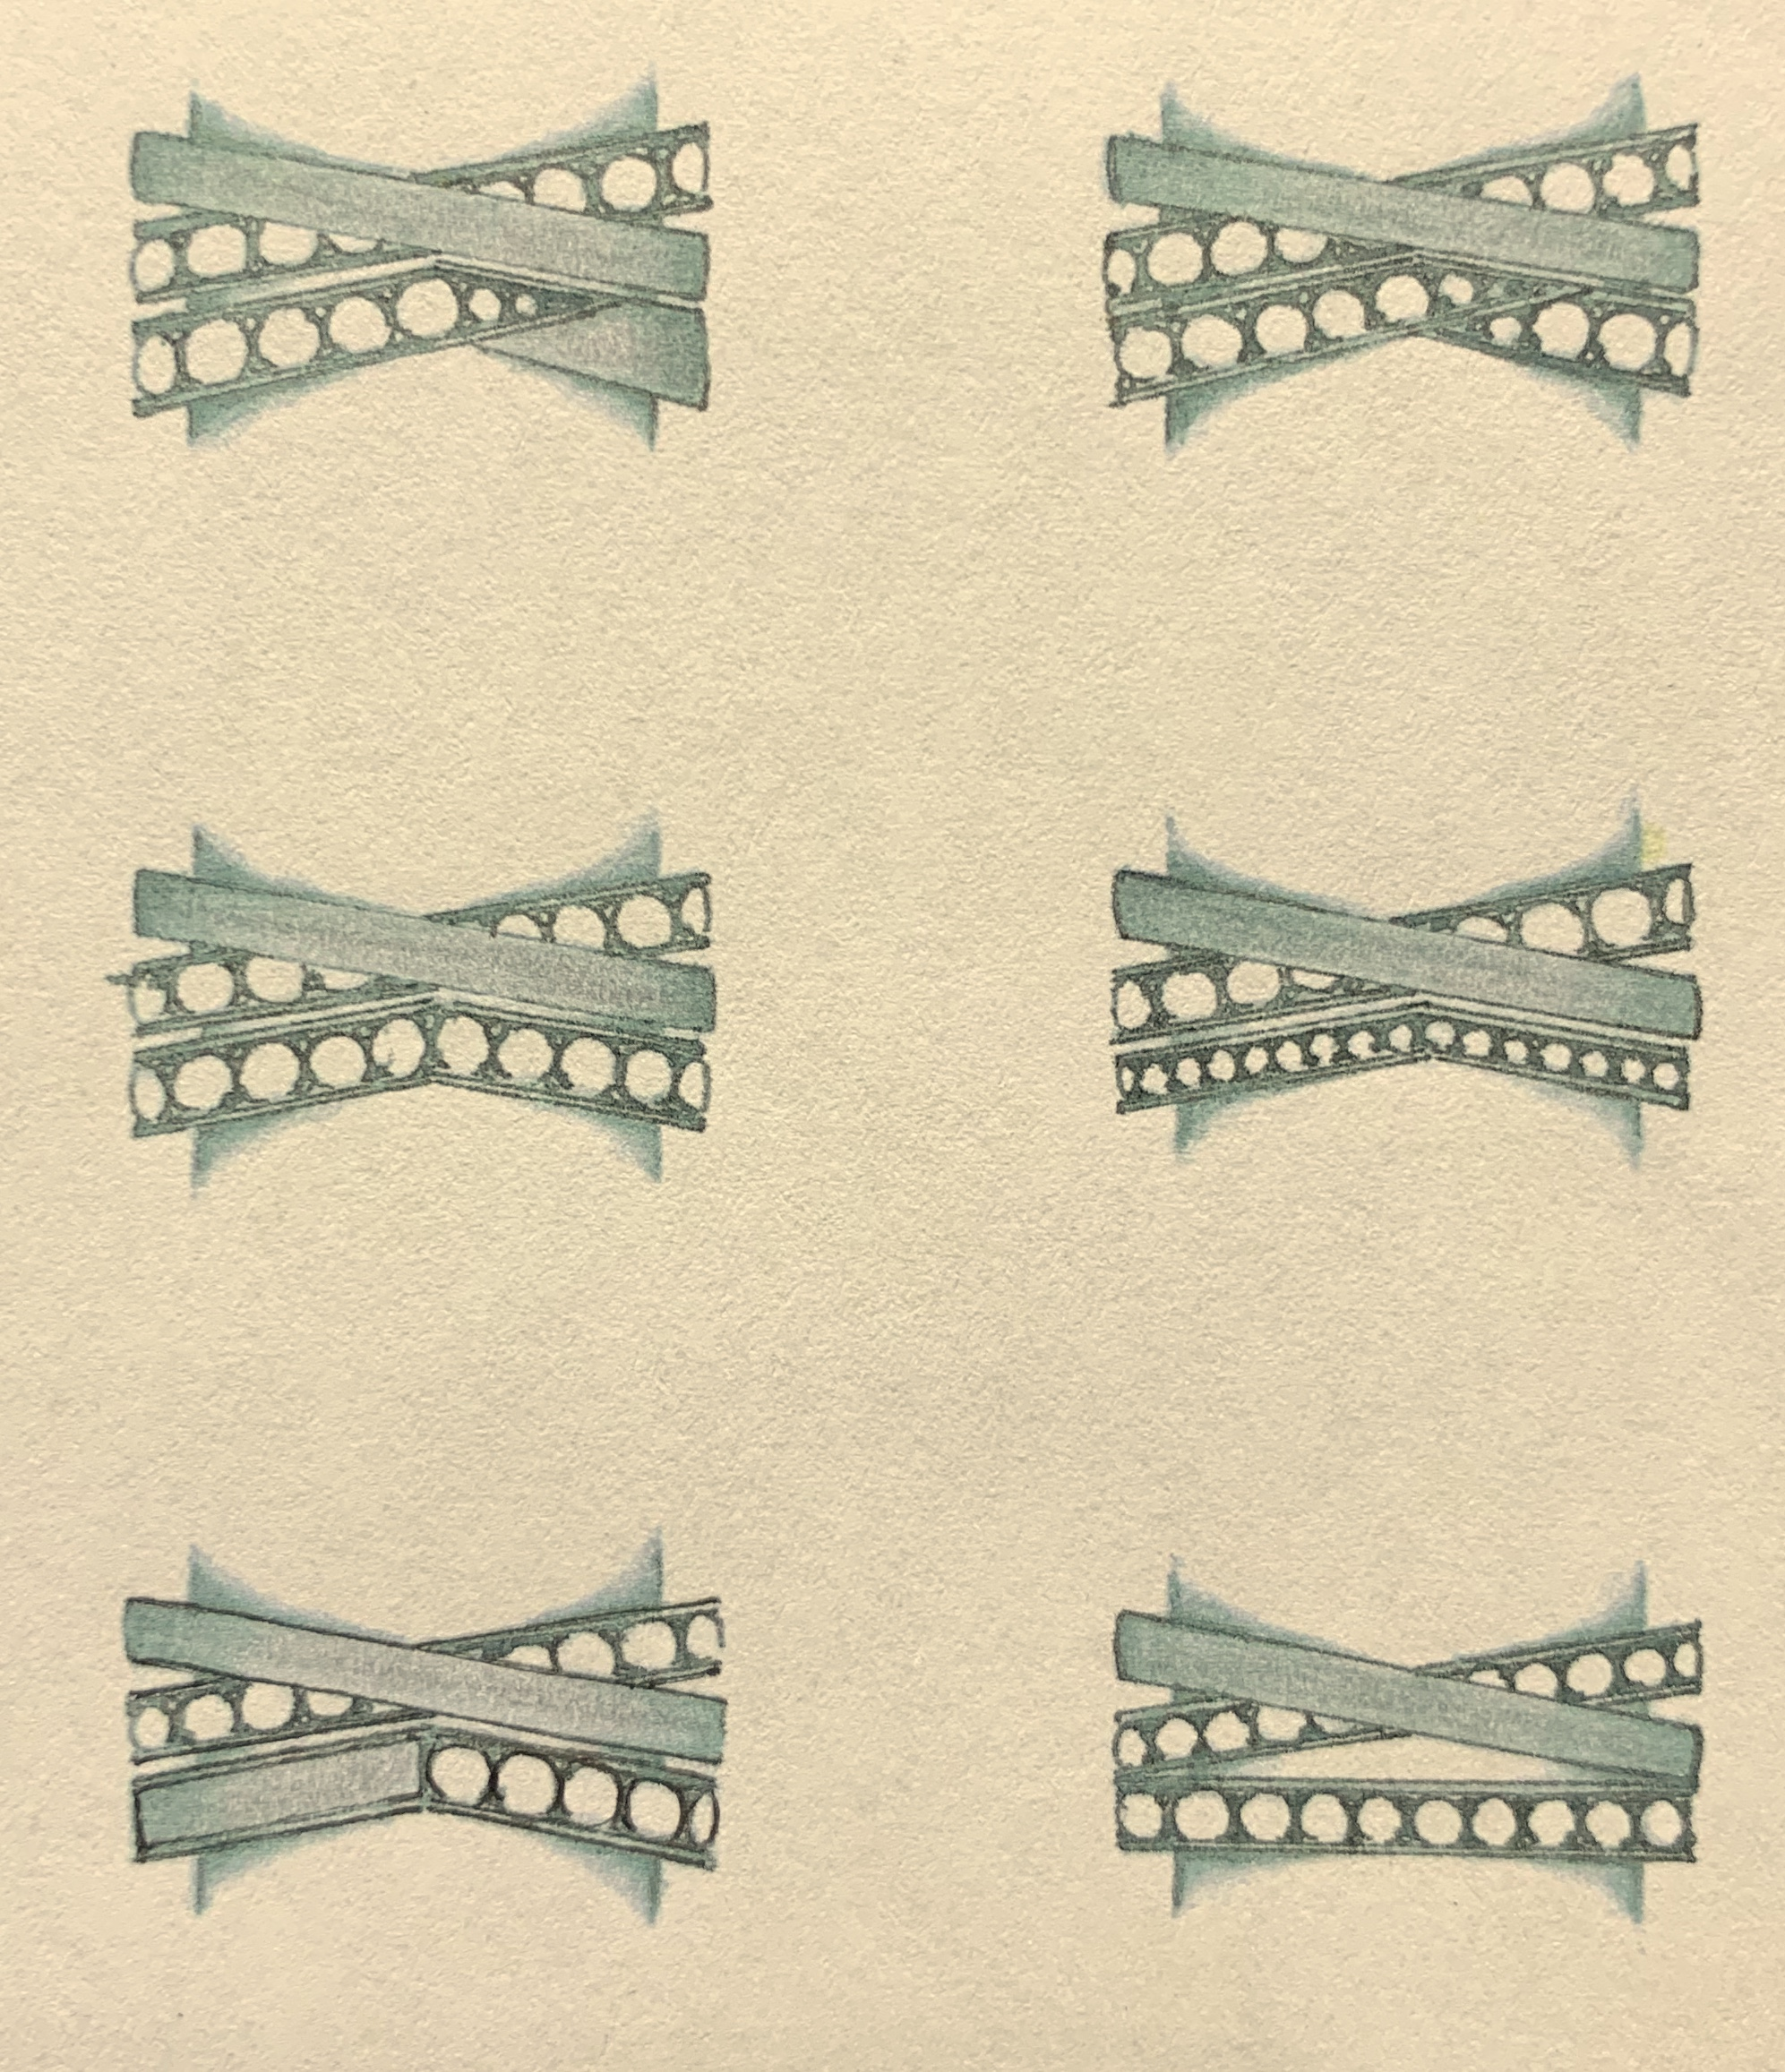 Designs for a fitted wedding ring.